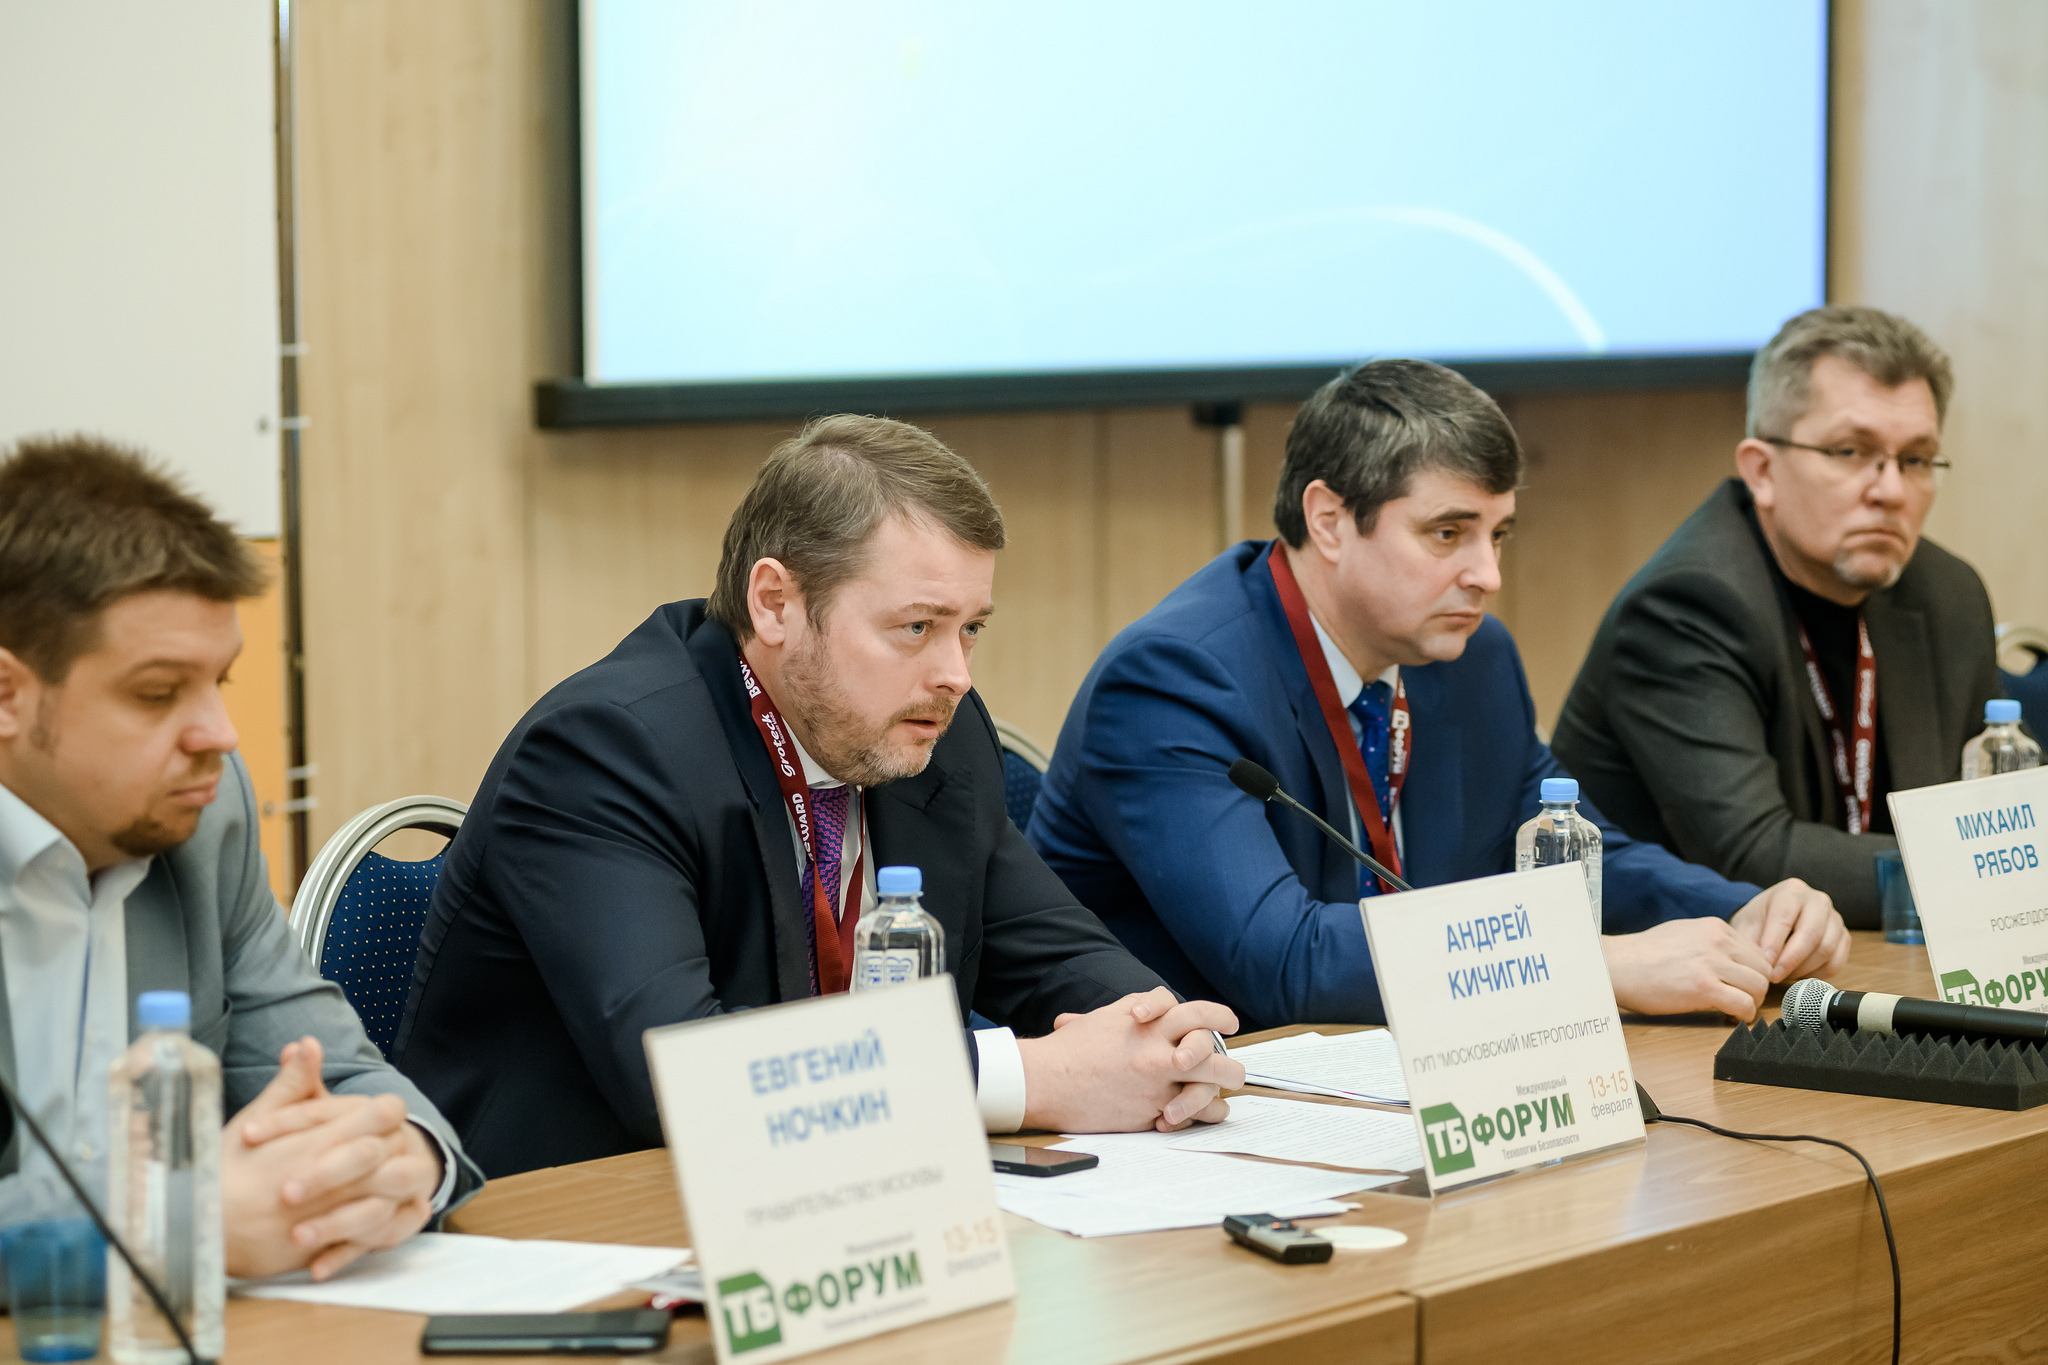 TB Forum participants will discuss actual tasks to ensure the safety and security of the Moscow metro